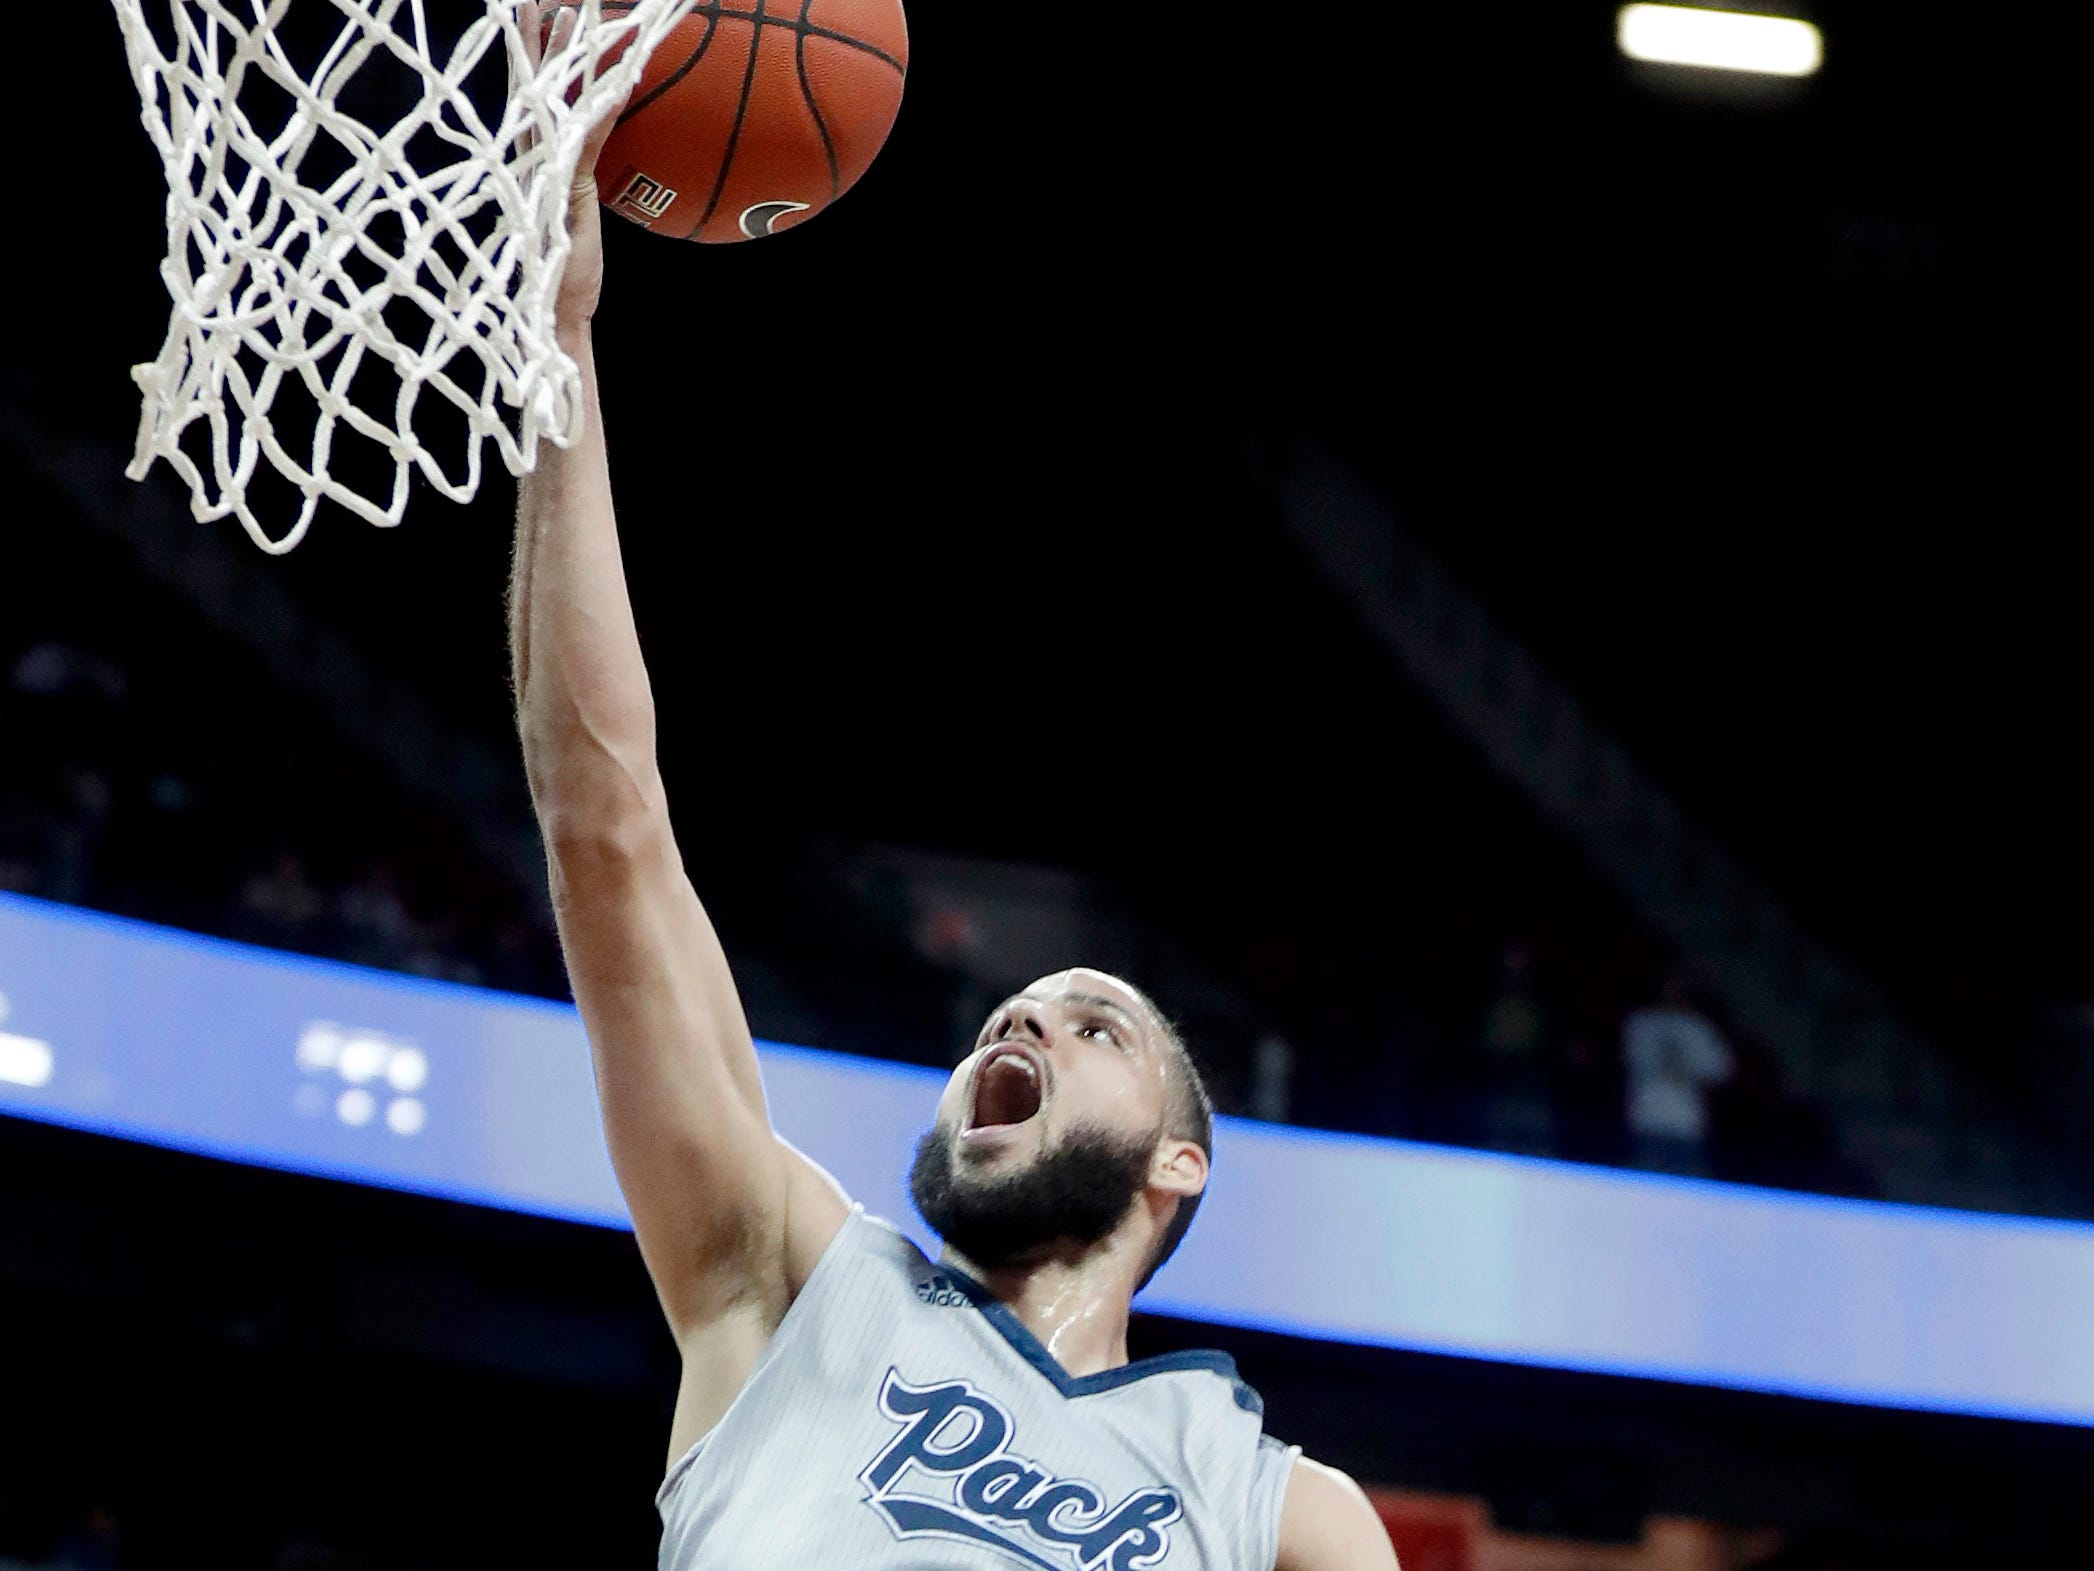 Nevada's Caleb Martin shoots during the first half of an NCAA college basketball game against Boise State in the Mountain West Conference men's tournament Thursday, March 14, 2019, in Las Vegas. (AP Photo/Isaac Brekken)